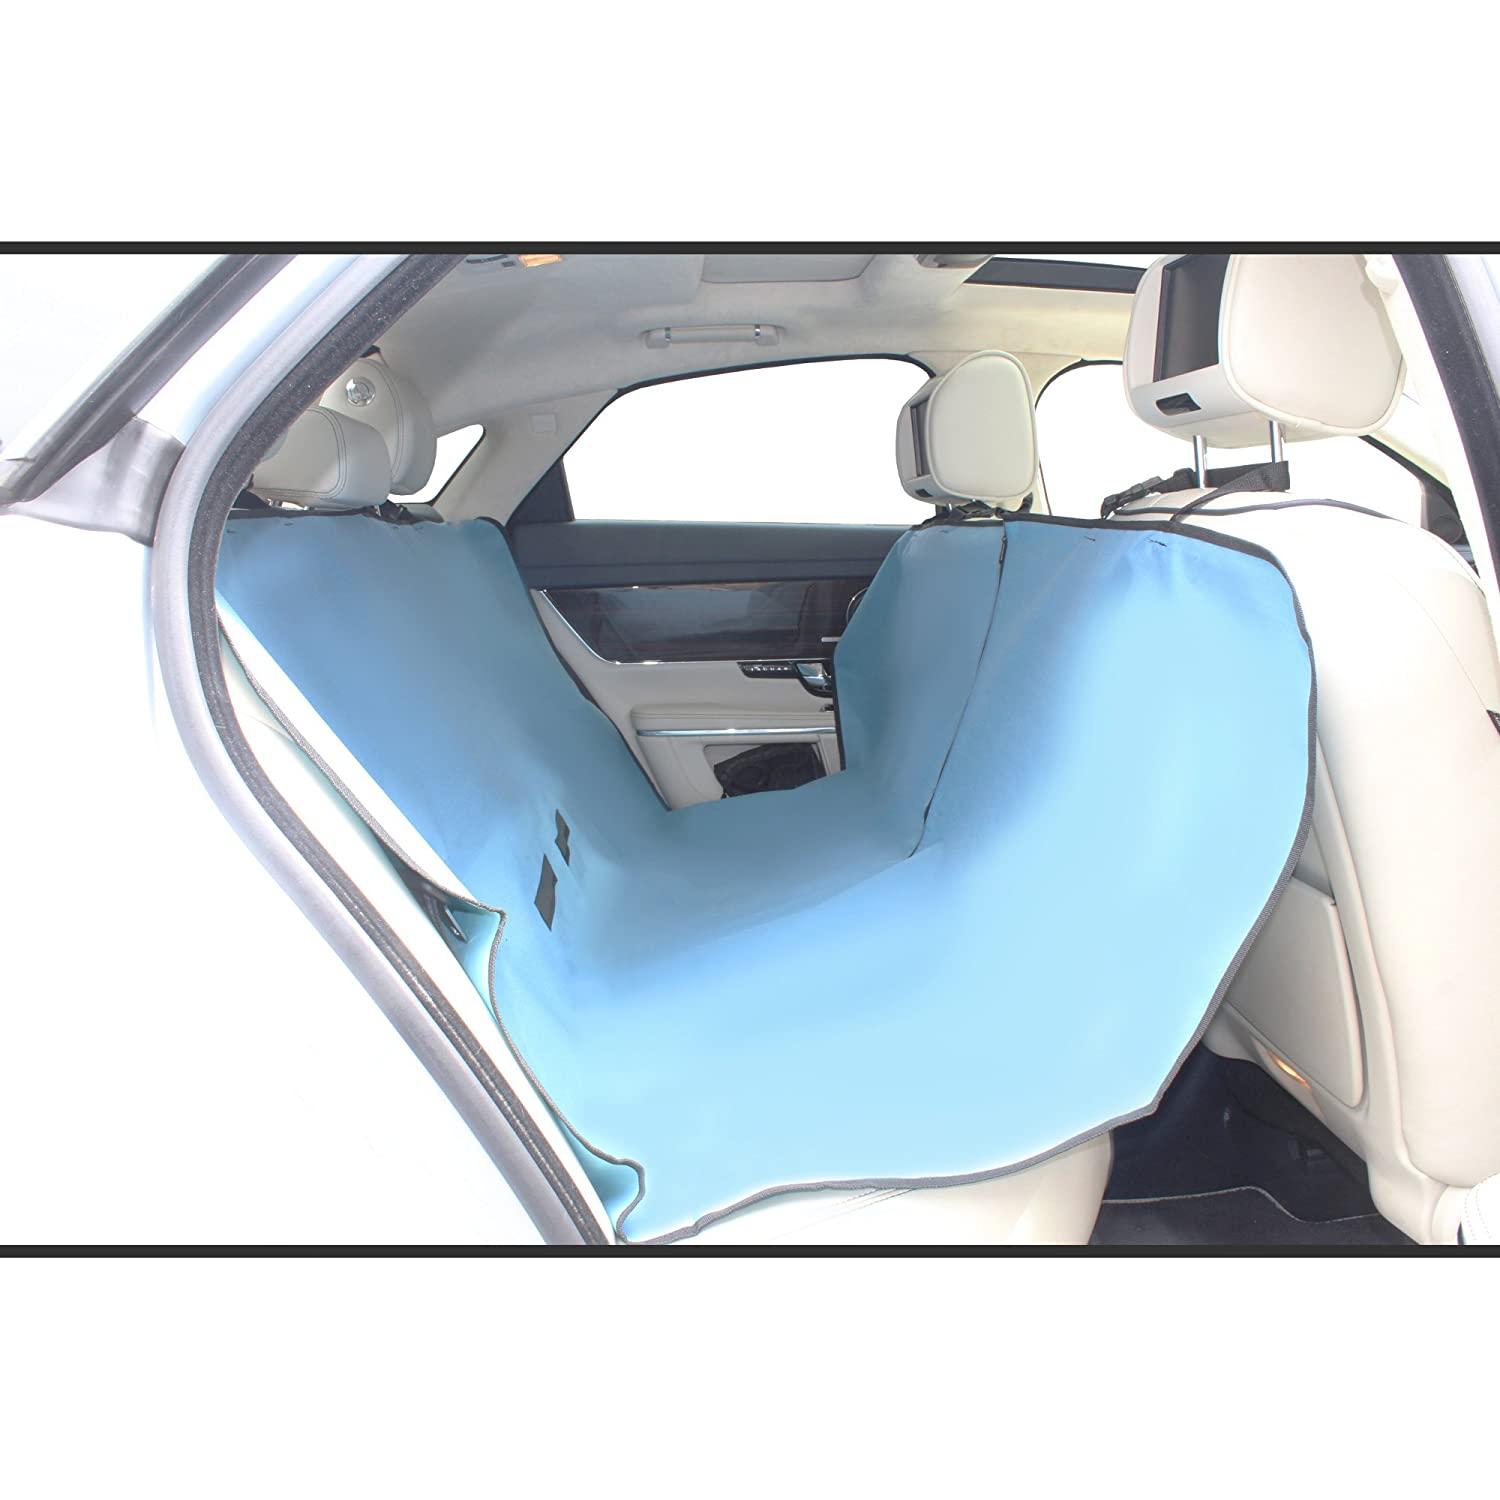 Blue Ukayed UKayed05814 Pet Dog Seat Cover Heavy Duty Protective Rear Car Seat /& Boot Waterproof Pet Cover Protector Hammock